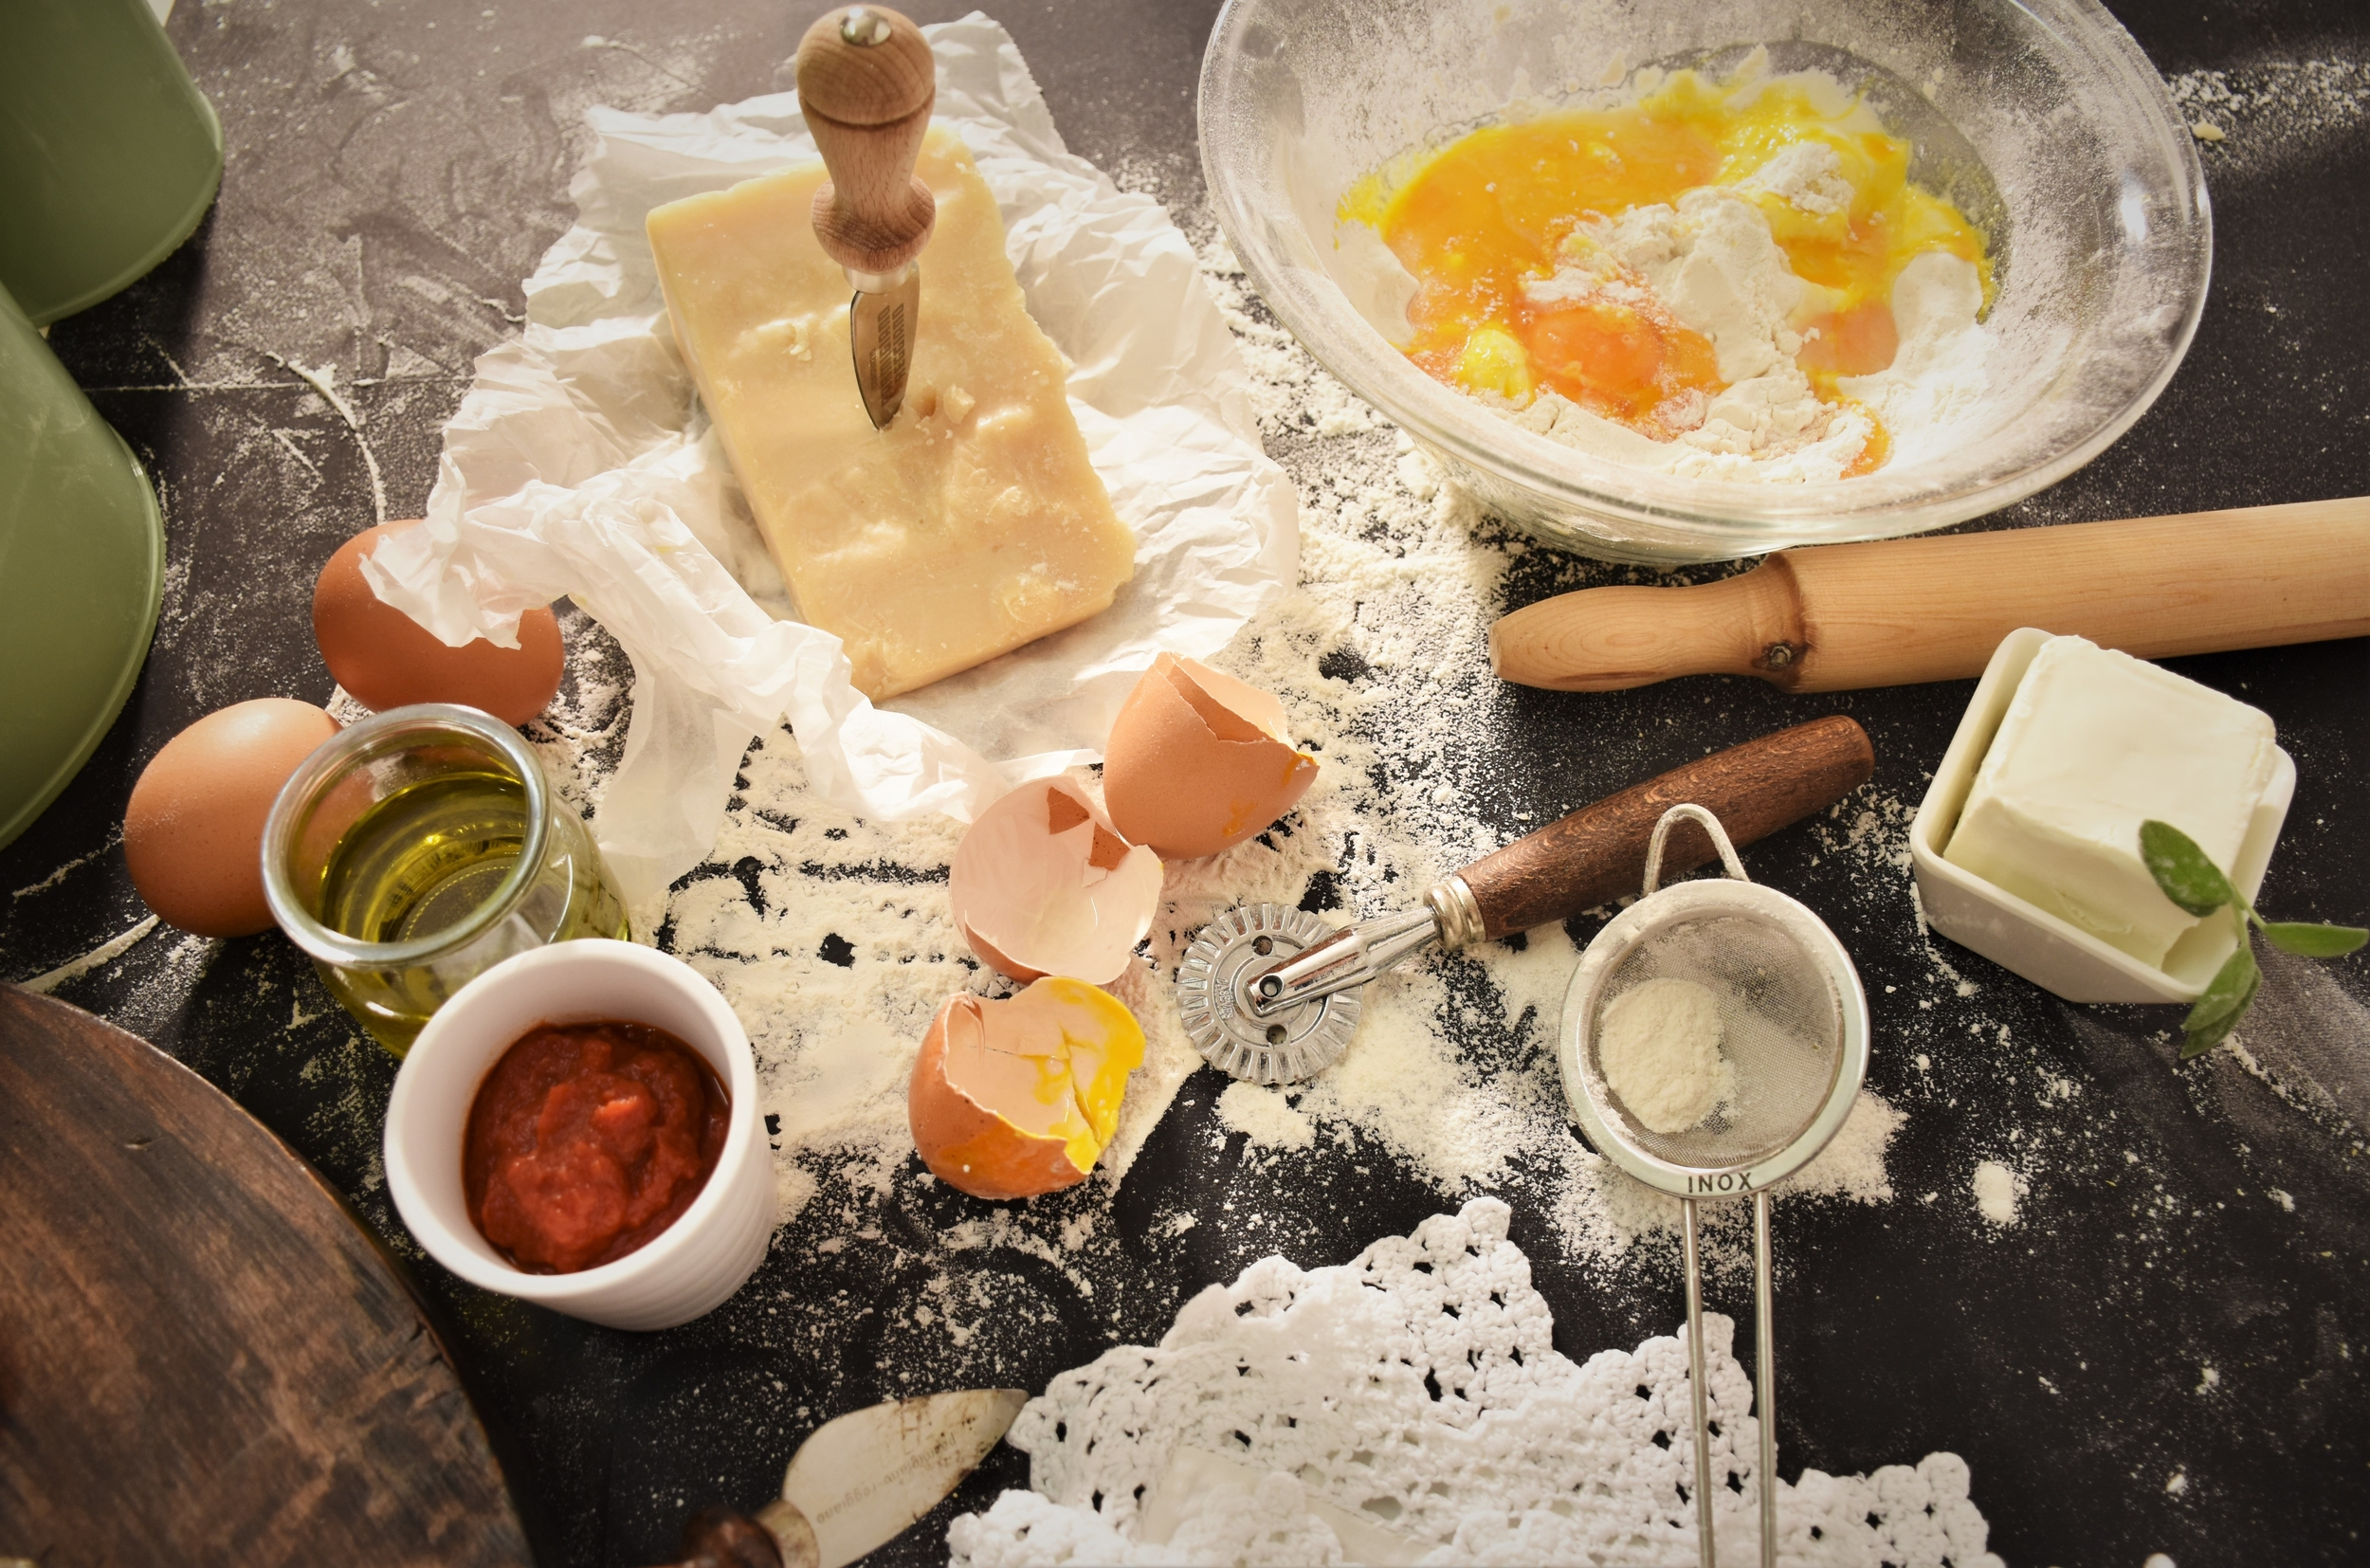 Cucina Della Rosa Cooking School At School Of Taste A Cooking Lesson In Parma To Learn The Secrets